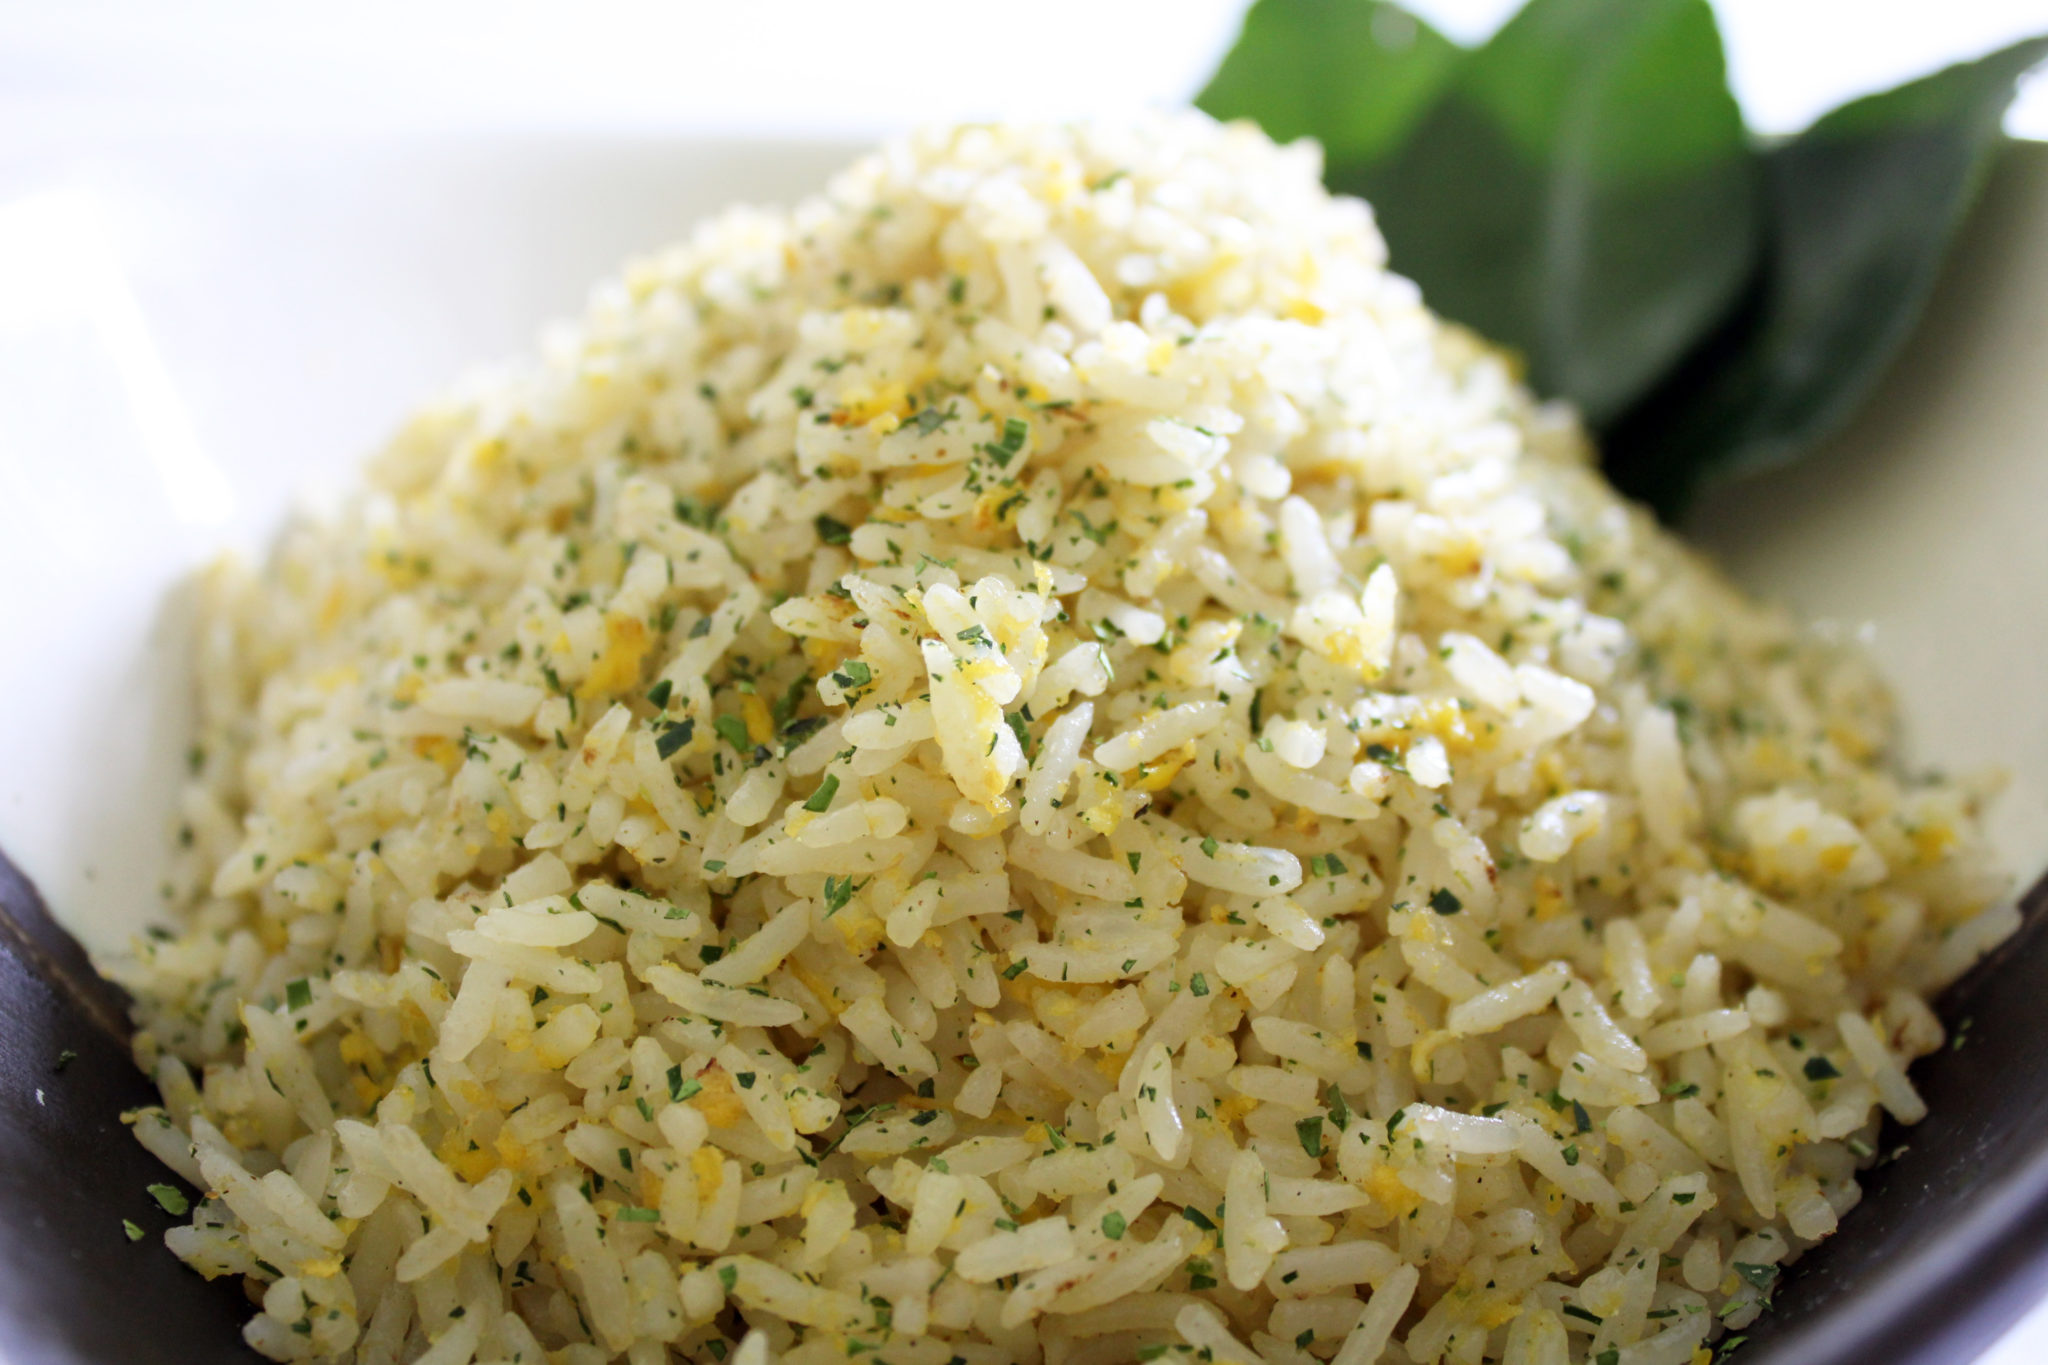 Kaffir Lime Fried Rice (Tamarind Hill Restaurant)